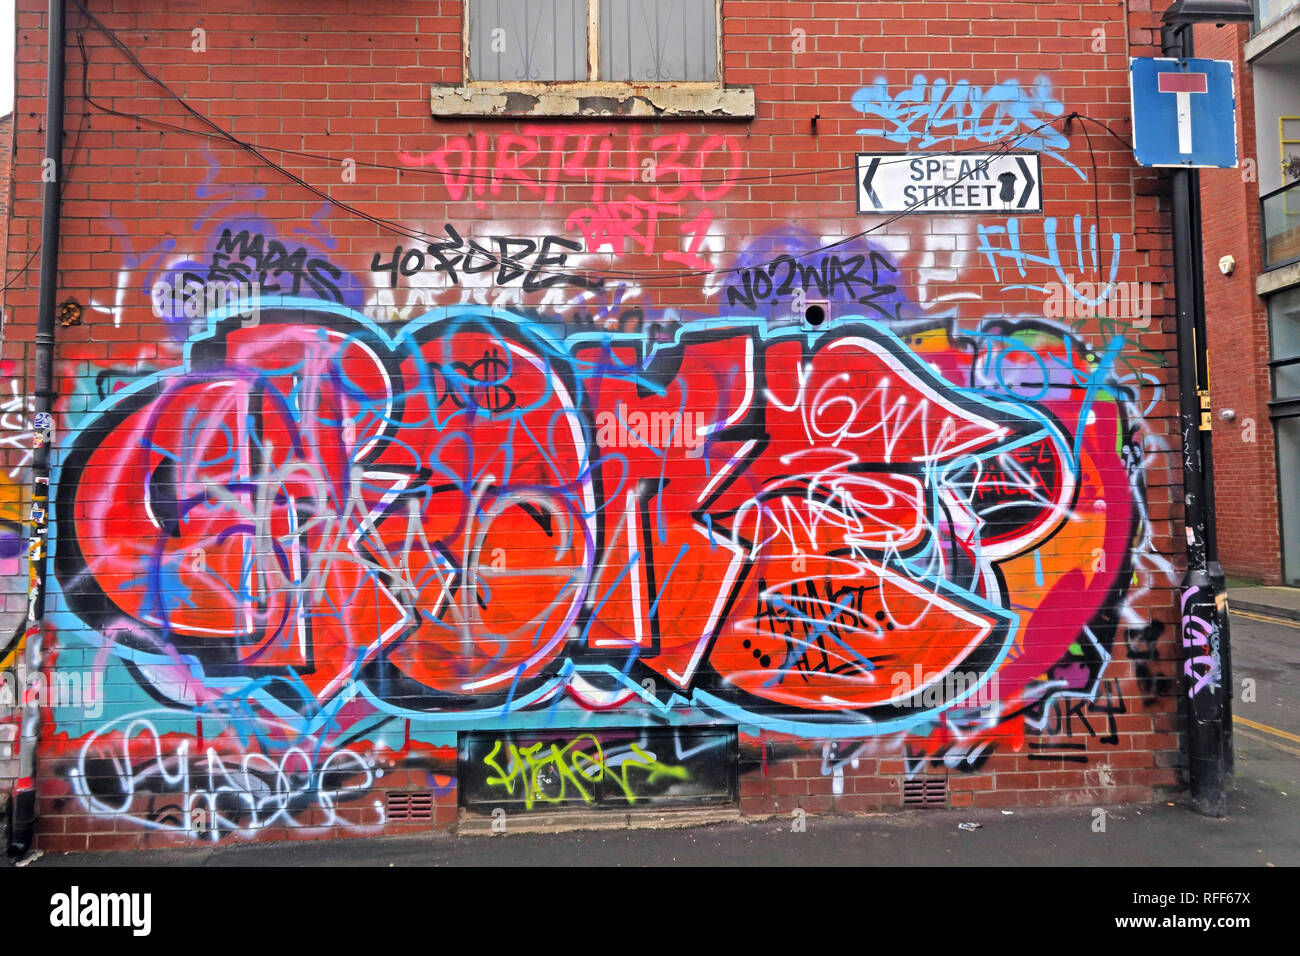 Urban art in Spear Street, Northern Quarter, NQ4, Manchester, North West England, UK, M1 1DF - Stock Image